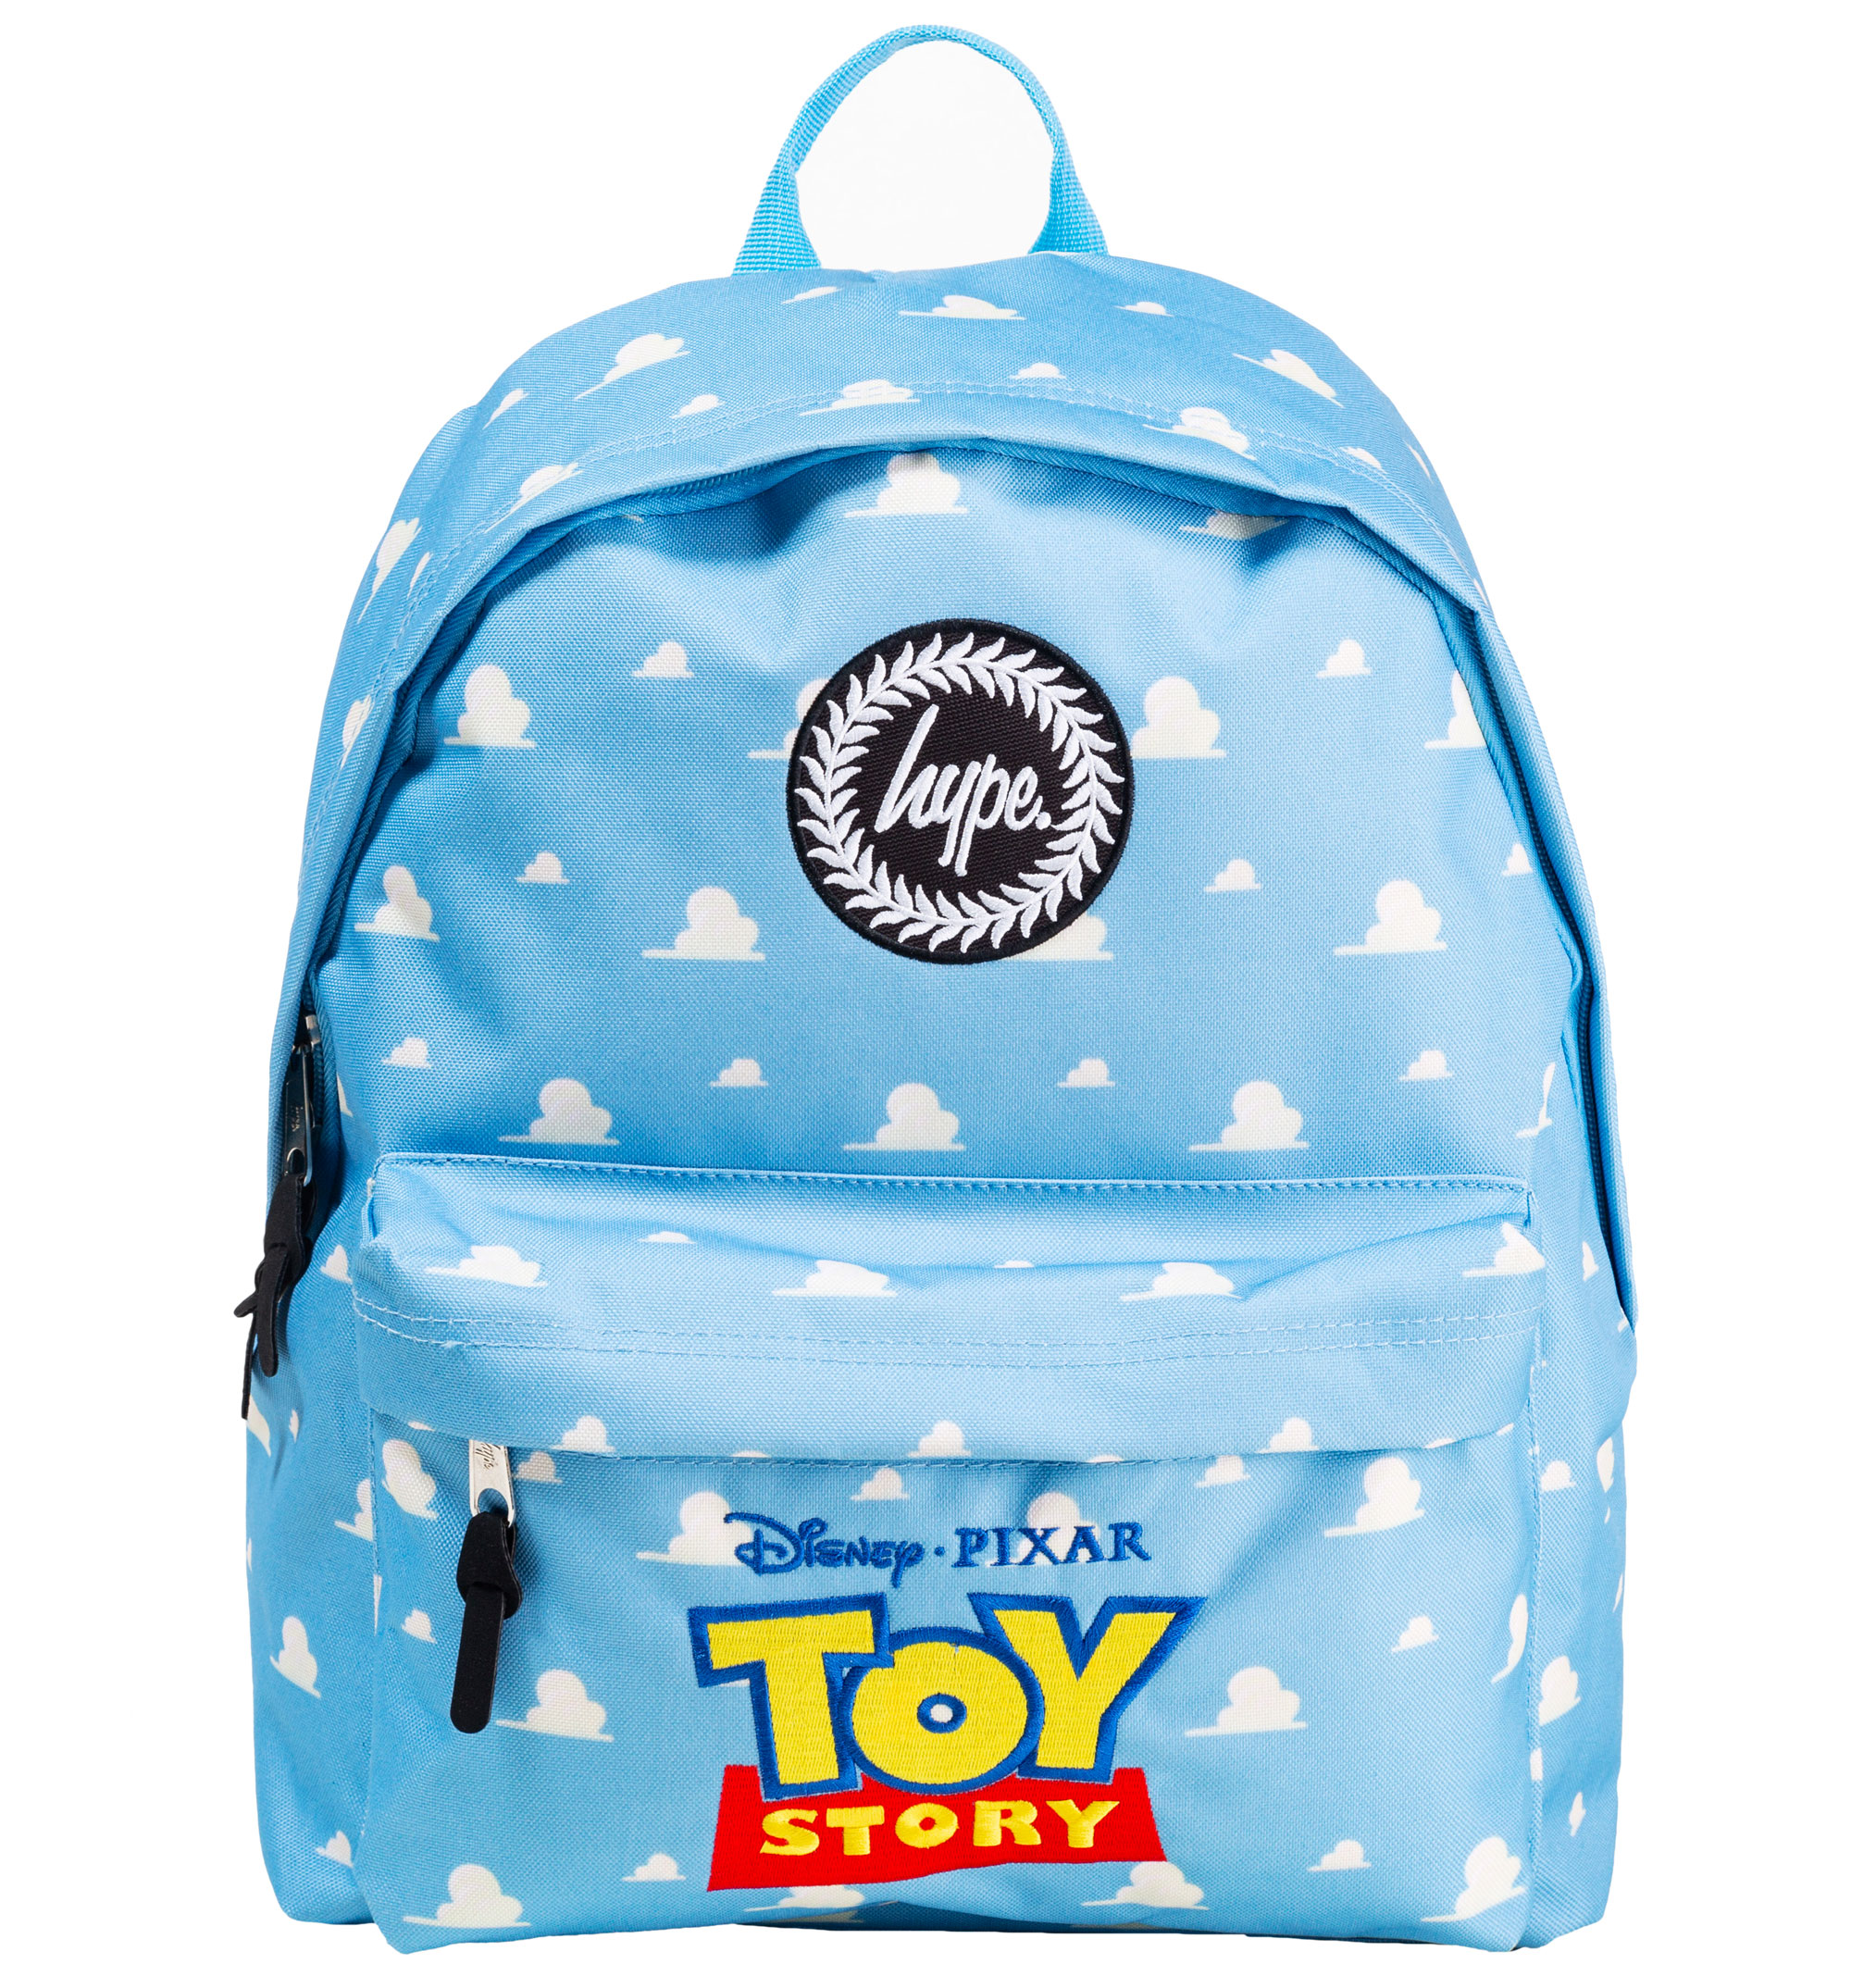 b2c9605f095 Blue Disney Pixar Toy Story Backpack from Hype - Blue webbed backpack -  Measures 40cm height